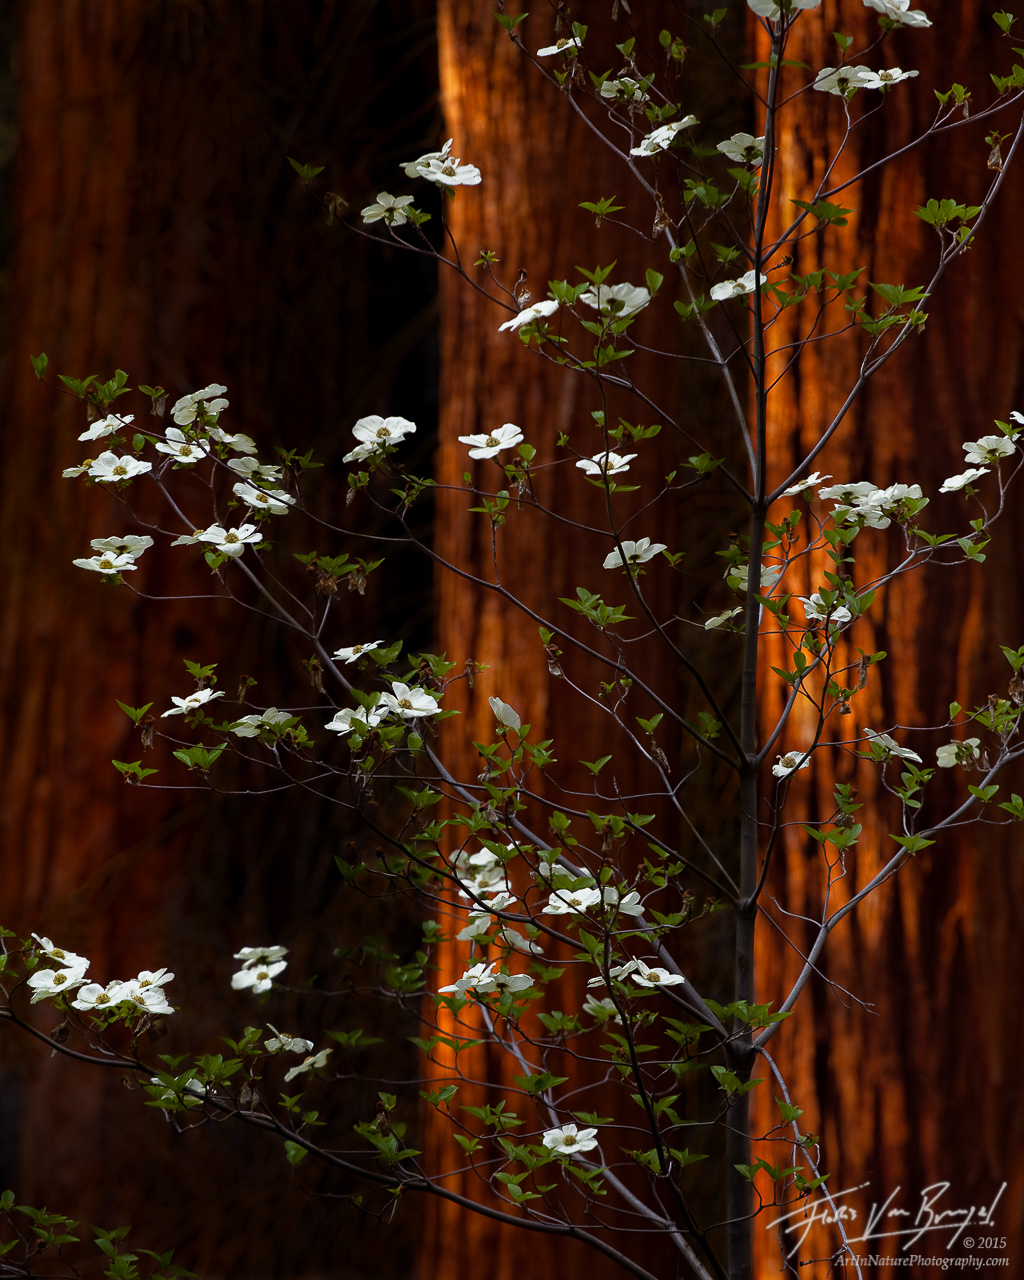 Spring Dogwoods and Giant Sequoias, Sequoia National Park, California, photo